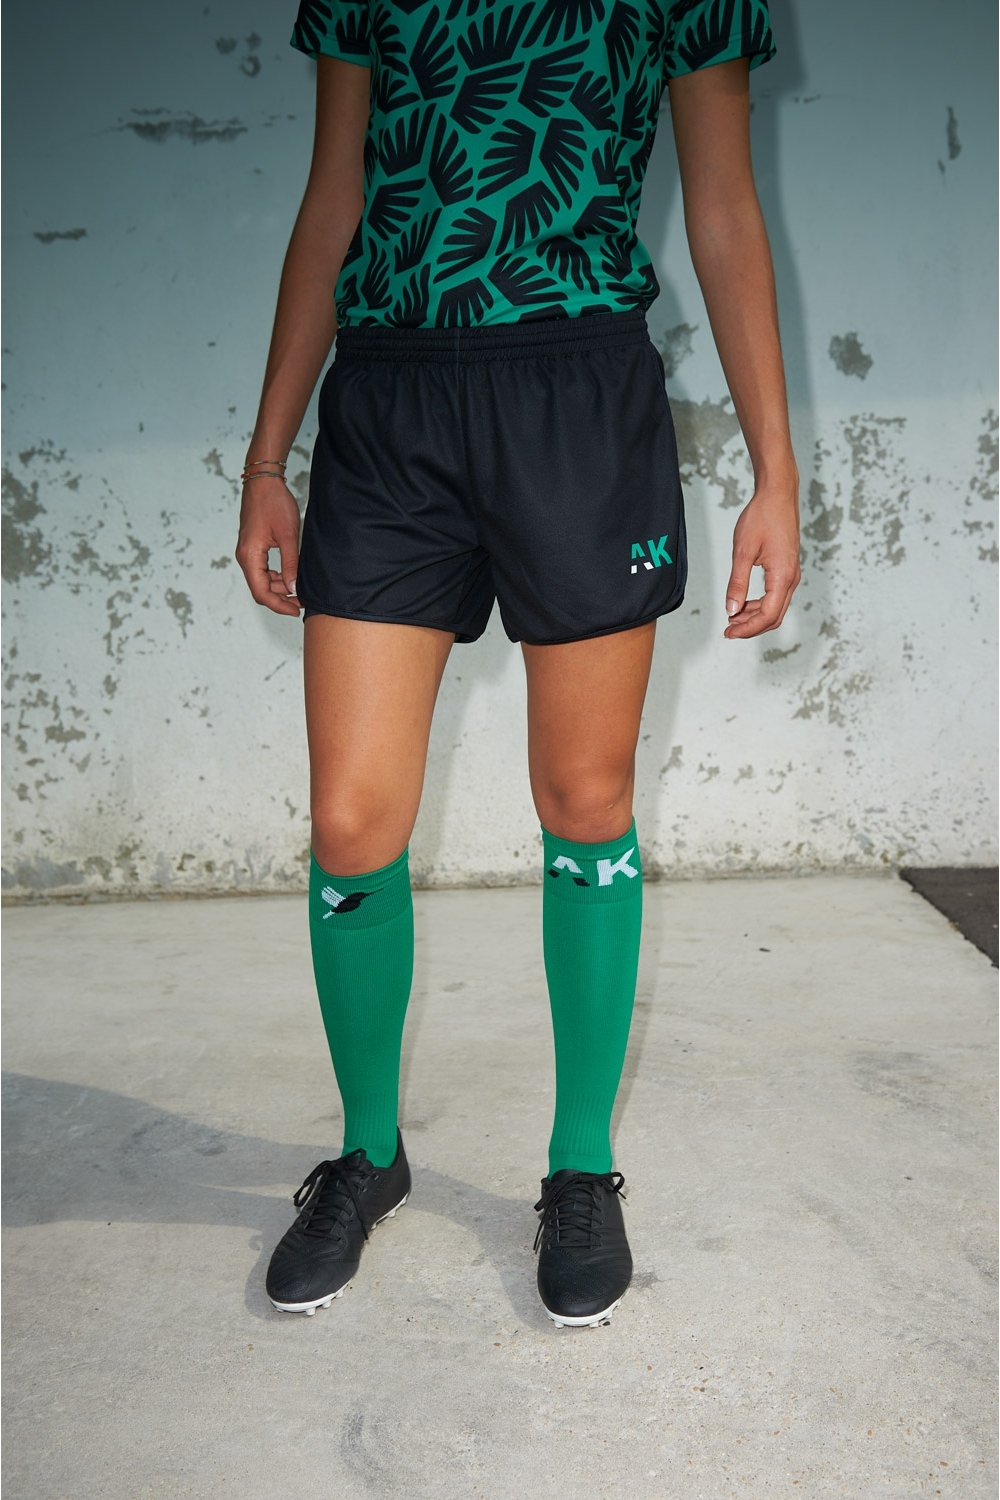 Short with under short Mia - Women's Football - Front view